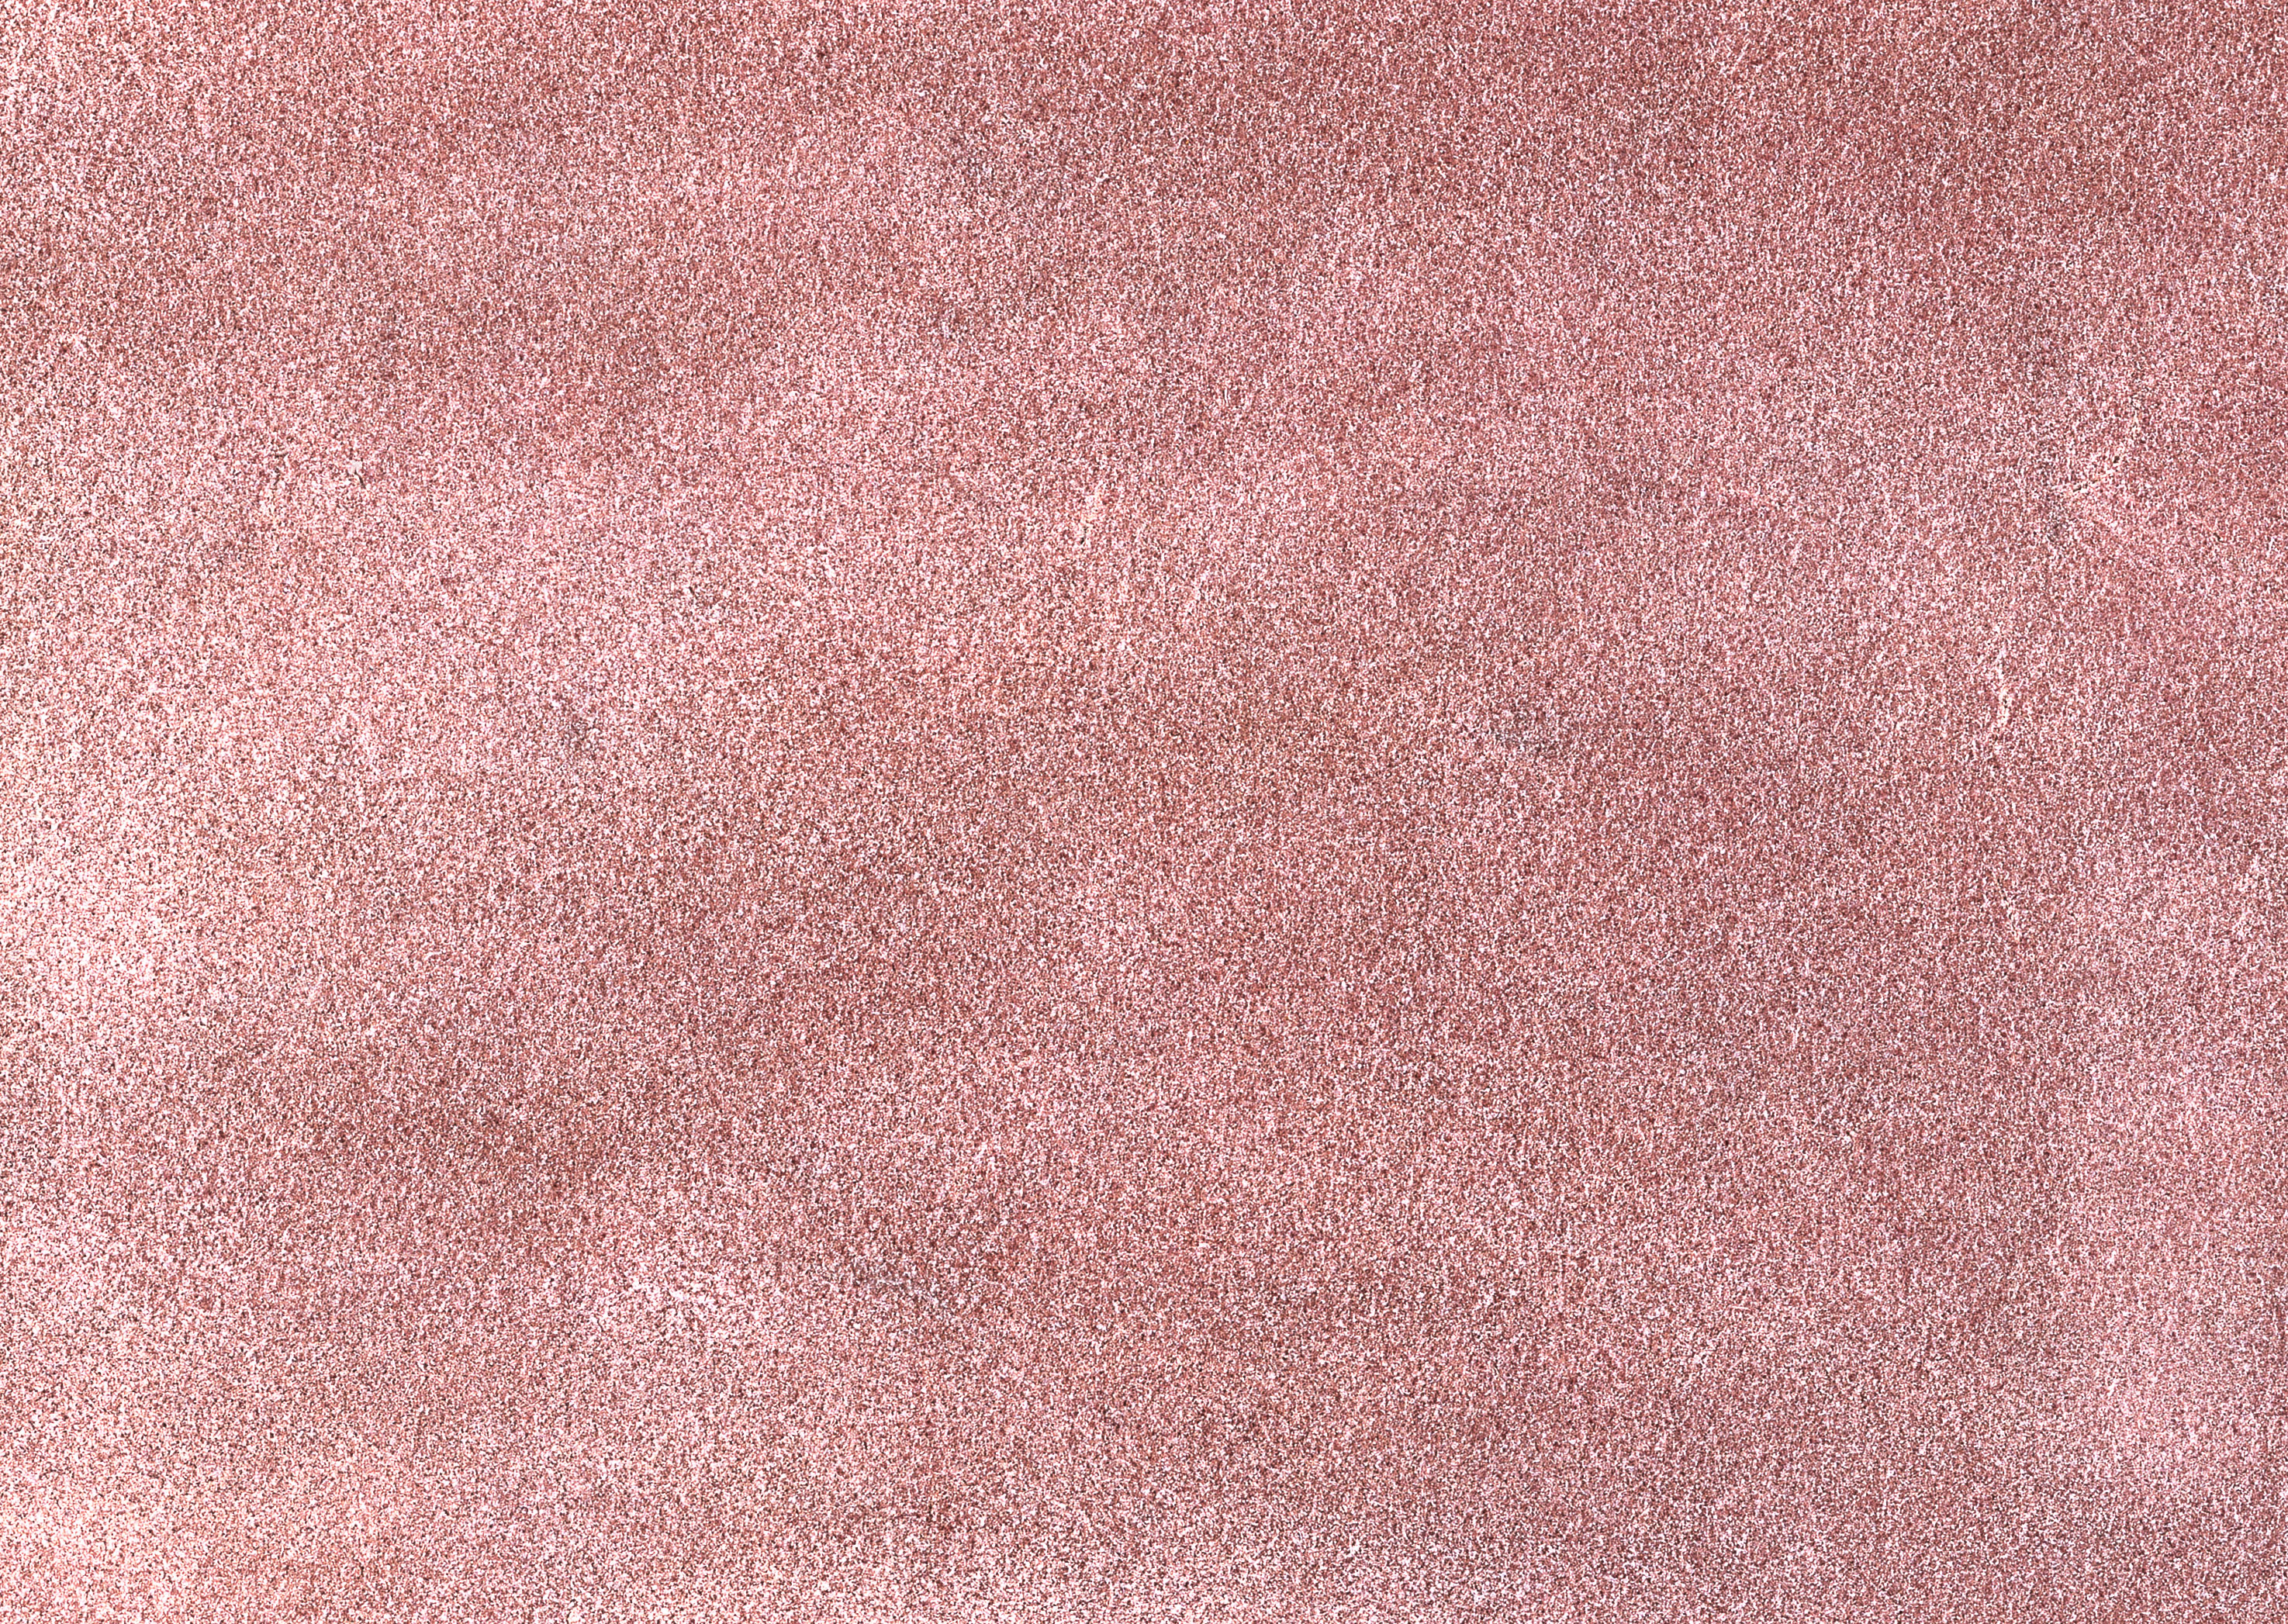 Leather big texures background image, free picture leather ...